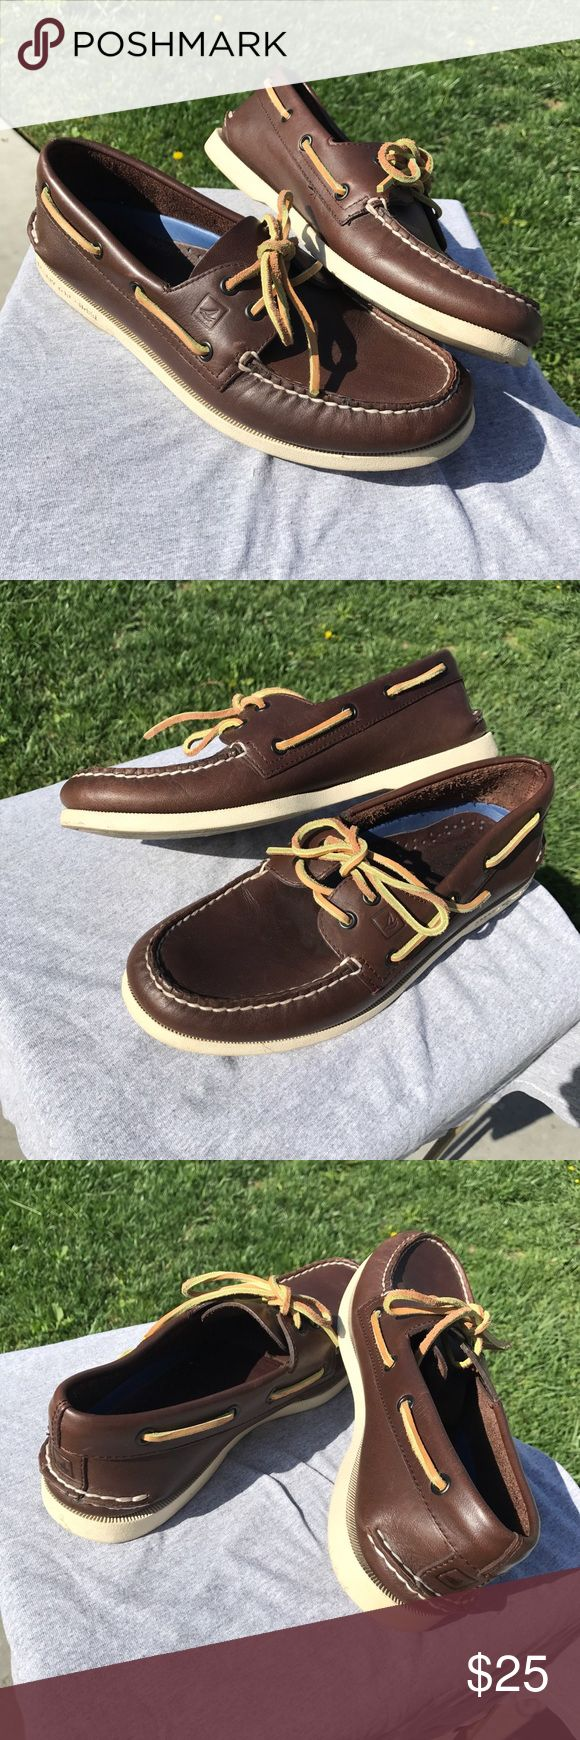 Sperry top siders Boat shoes Brown Cool boat shoes // in brown color // size 9 men // euc // 9/10 // no rips no leather stains // great for summer Sperry Top-Sider Shoes Boat Shoes